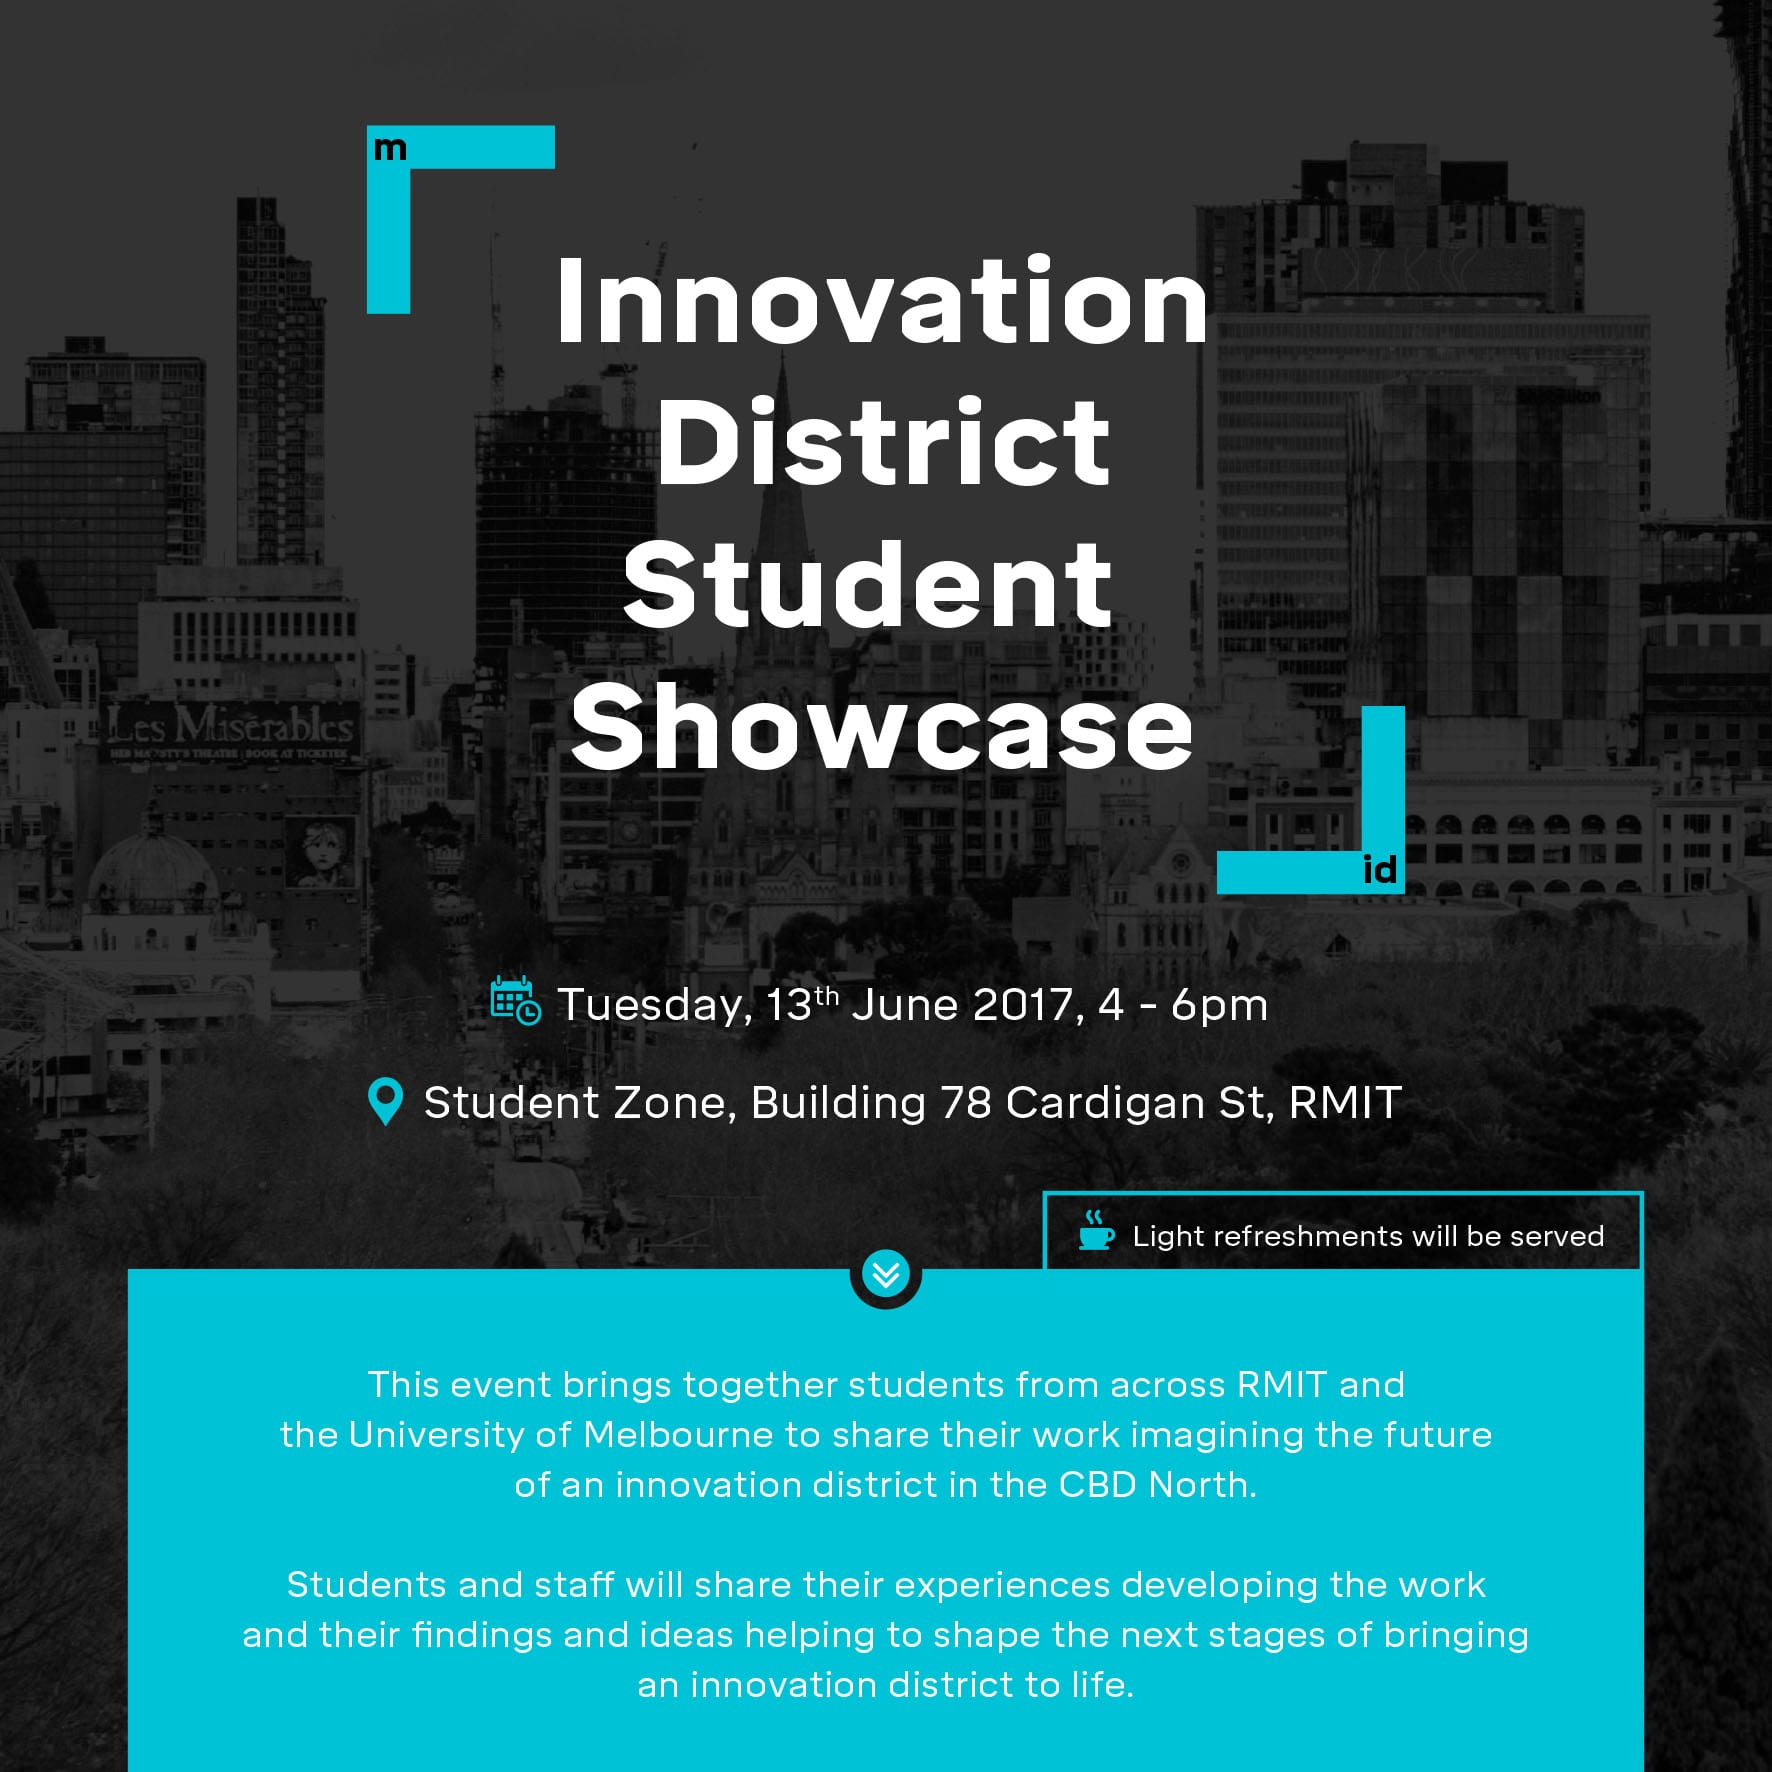 Innovation District Student Showcase